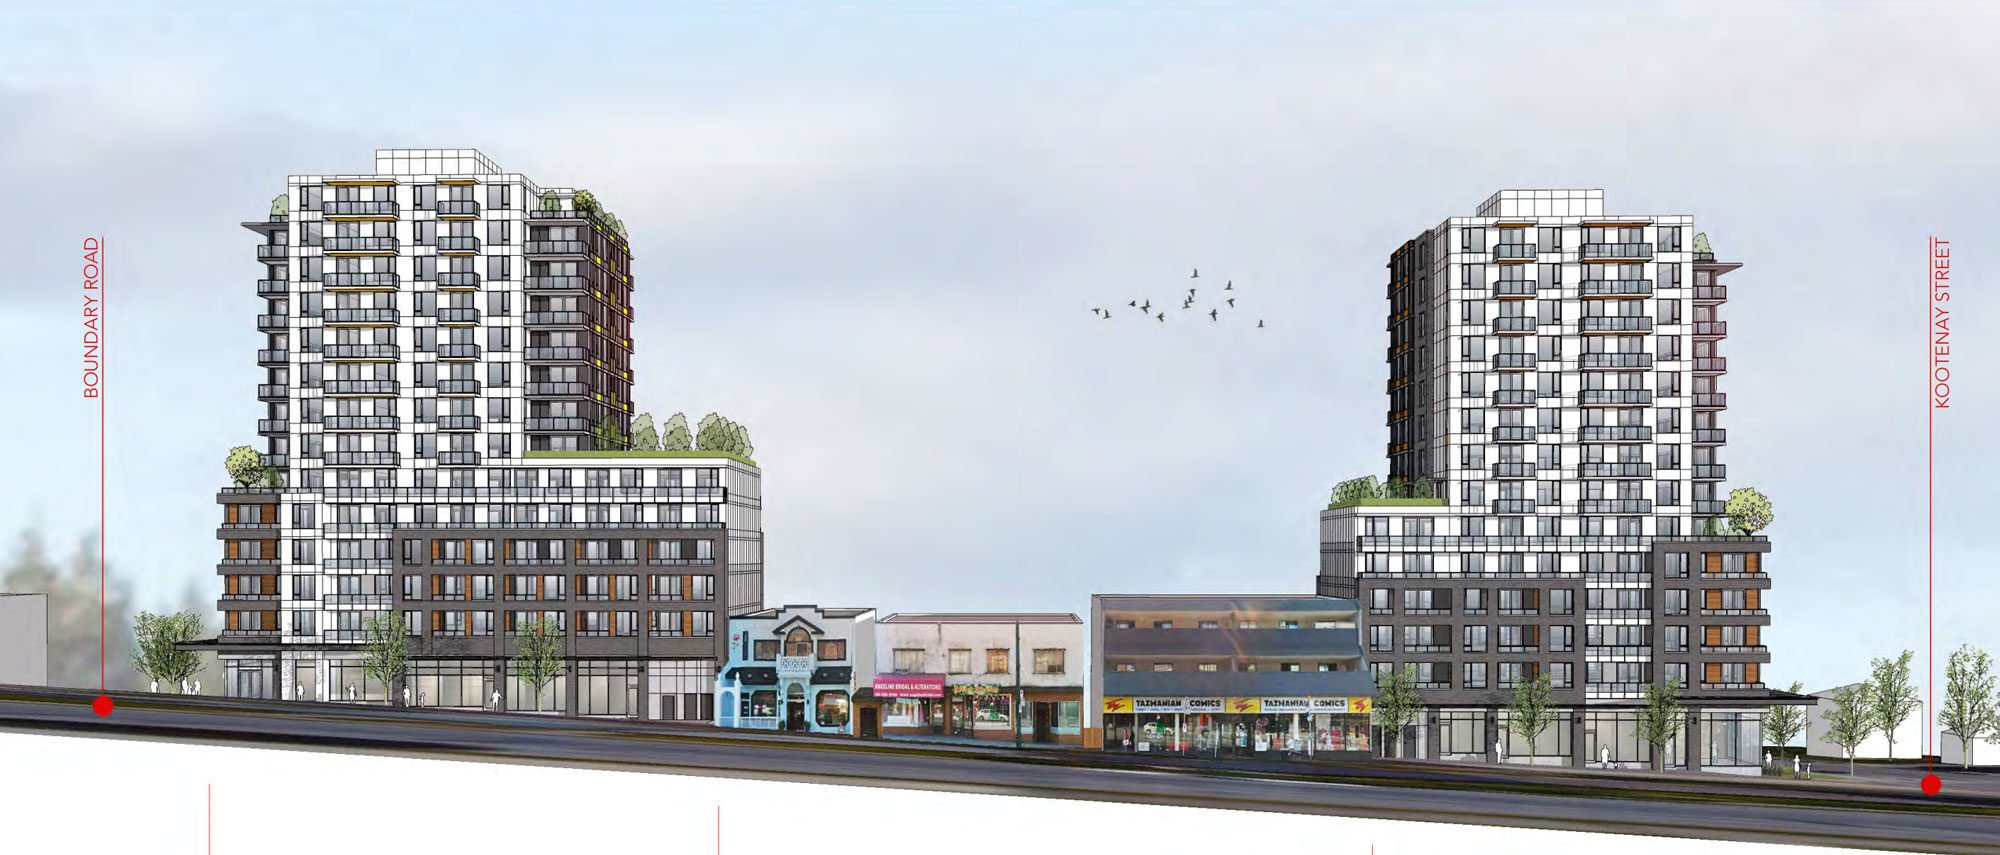 Moderate Income Rental Housing Pilot Program towers slated for East Hastings